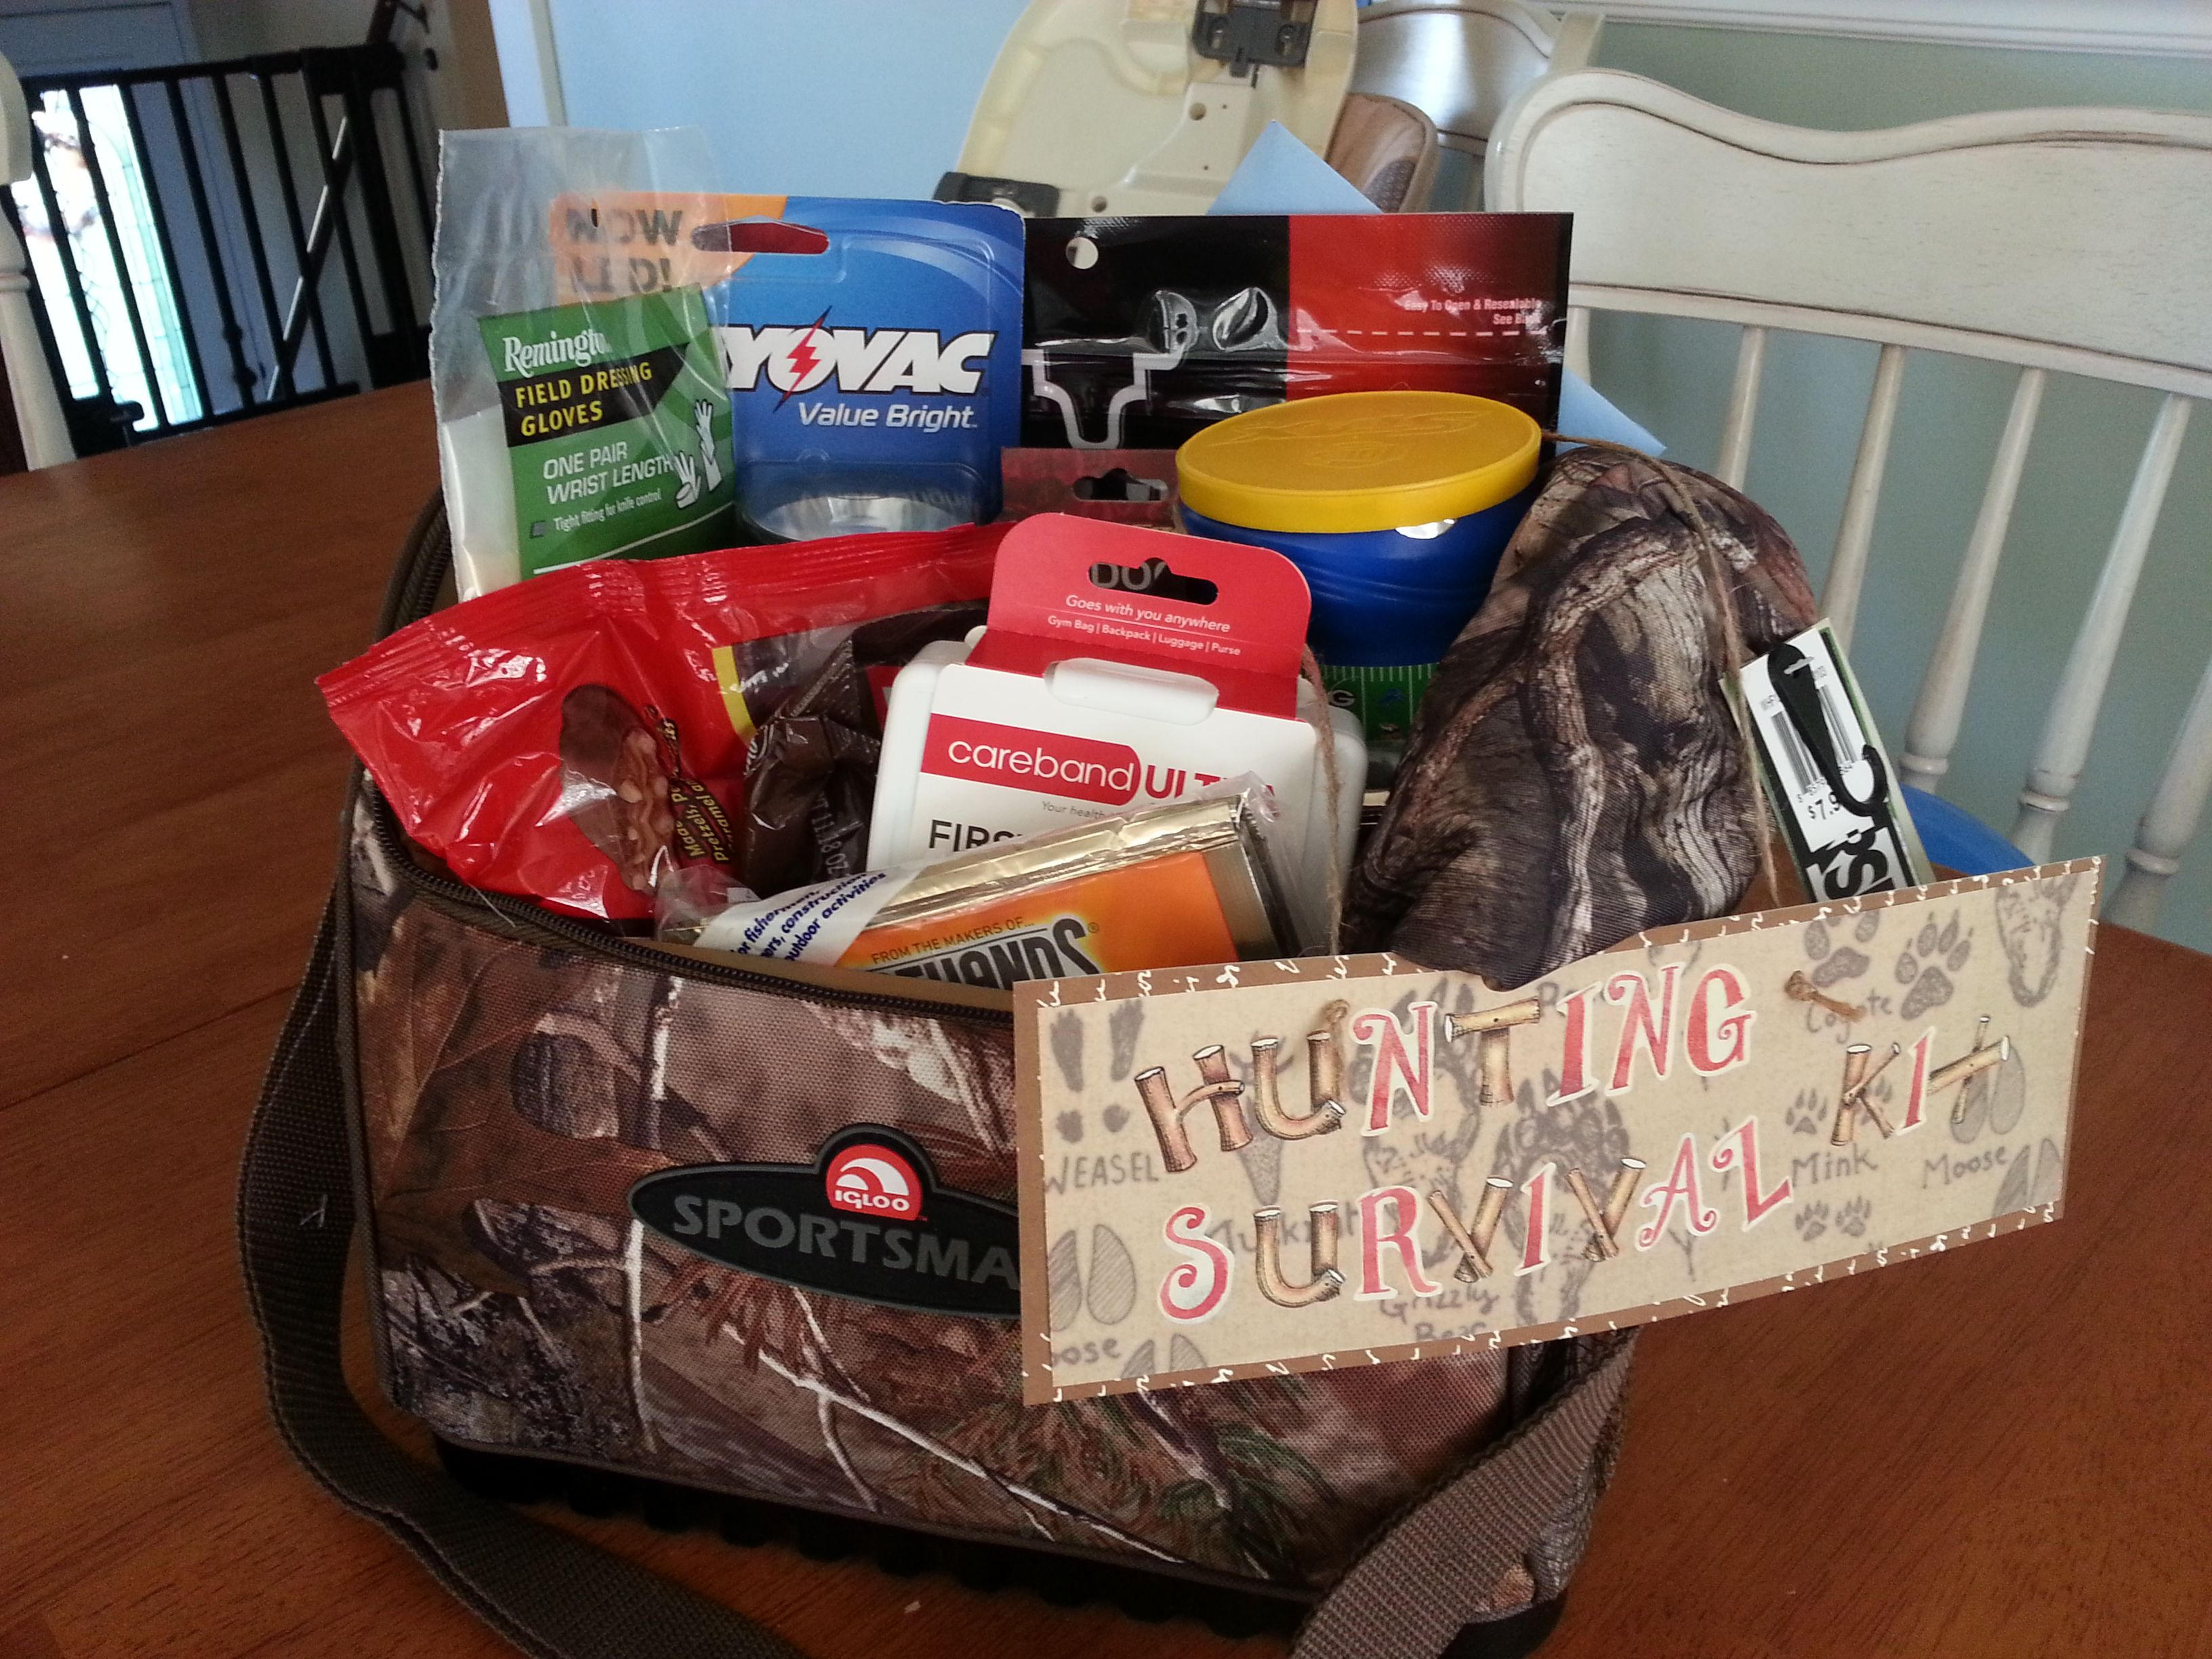 Pin by msharb on me chelle misc likes pinterest for Hunting and fishing gifts